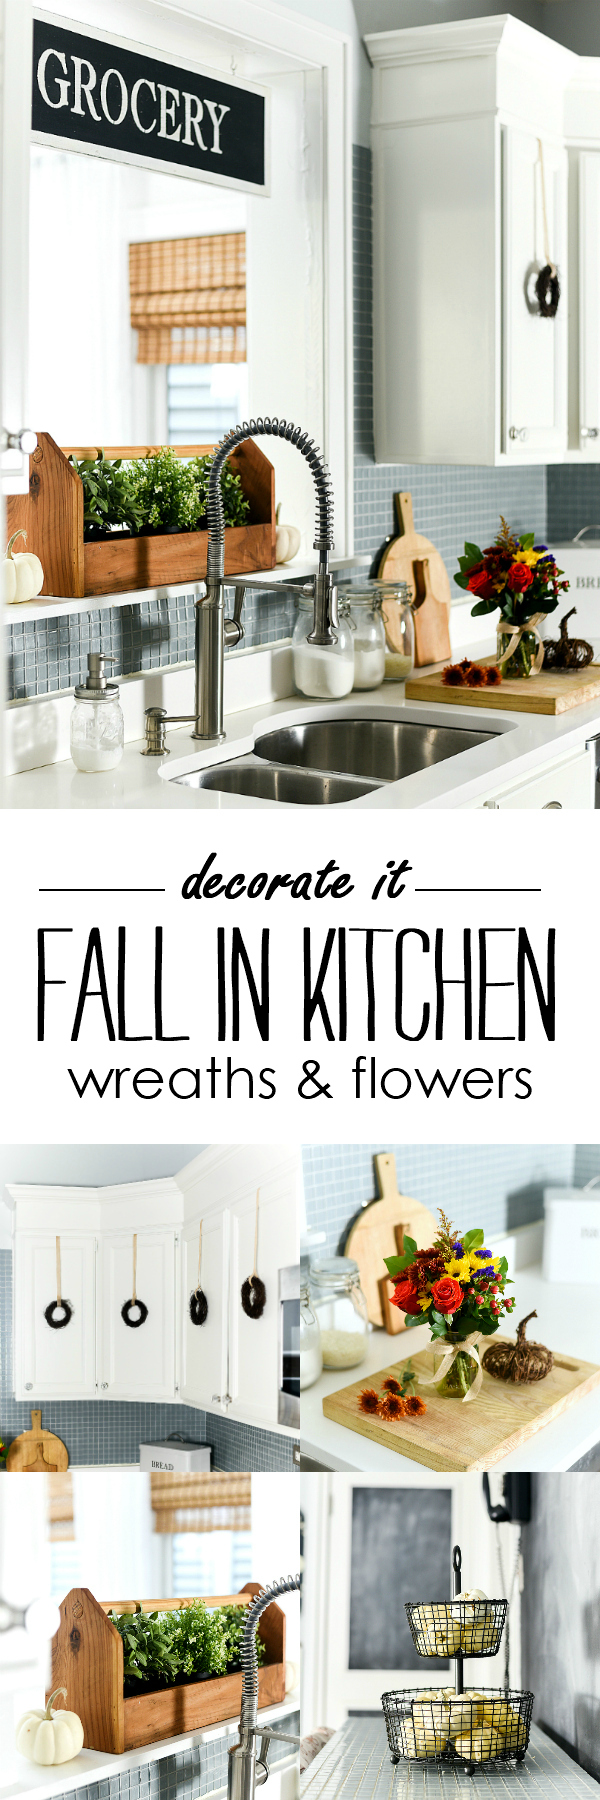 Fall in Kitchen - Fall Decor in Kitchen Ideas